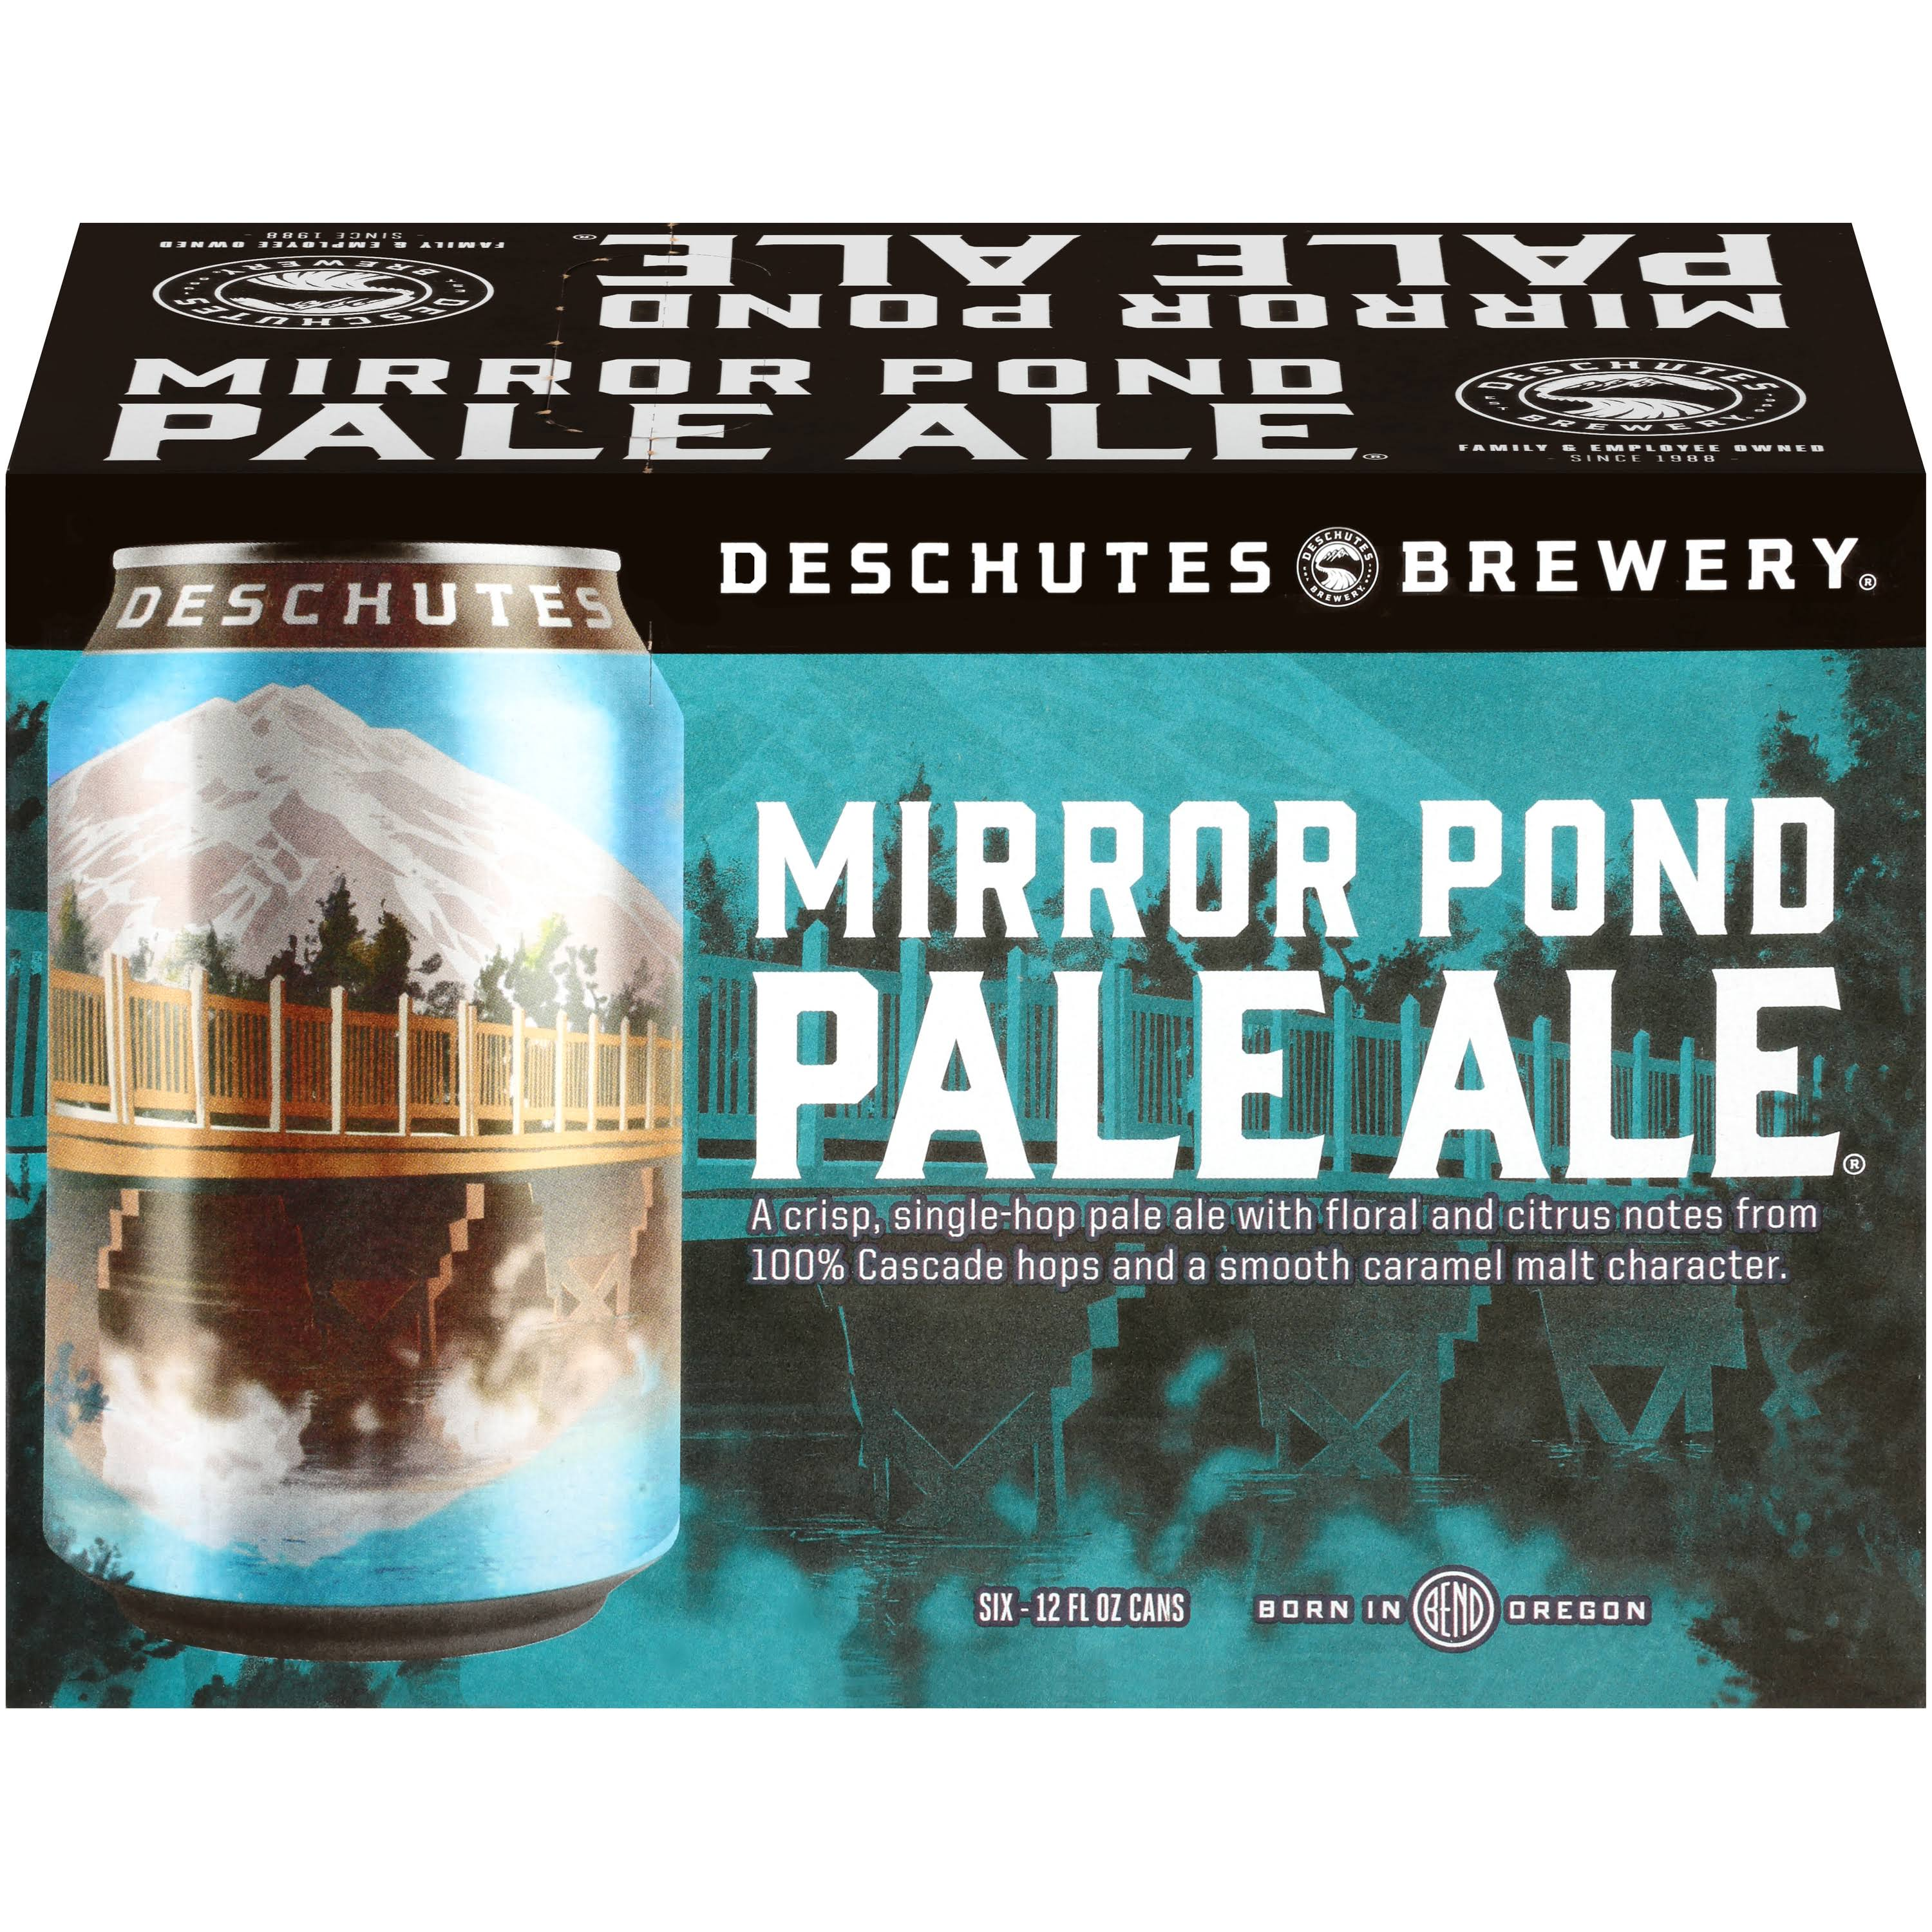 Deschutes Brewery Pale Ale, Mirror Pond, 6 Pack - 6 pack, 12 fl oz cans